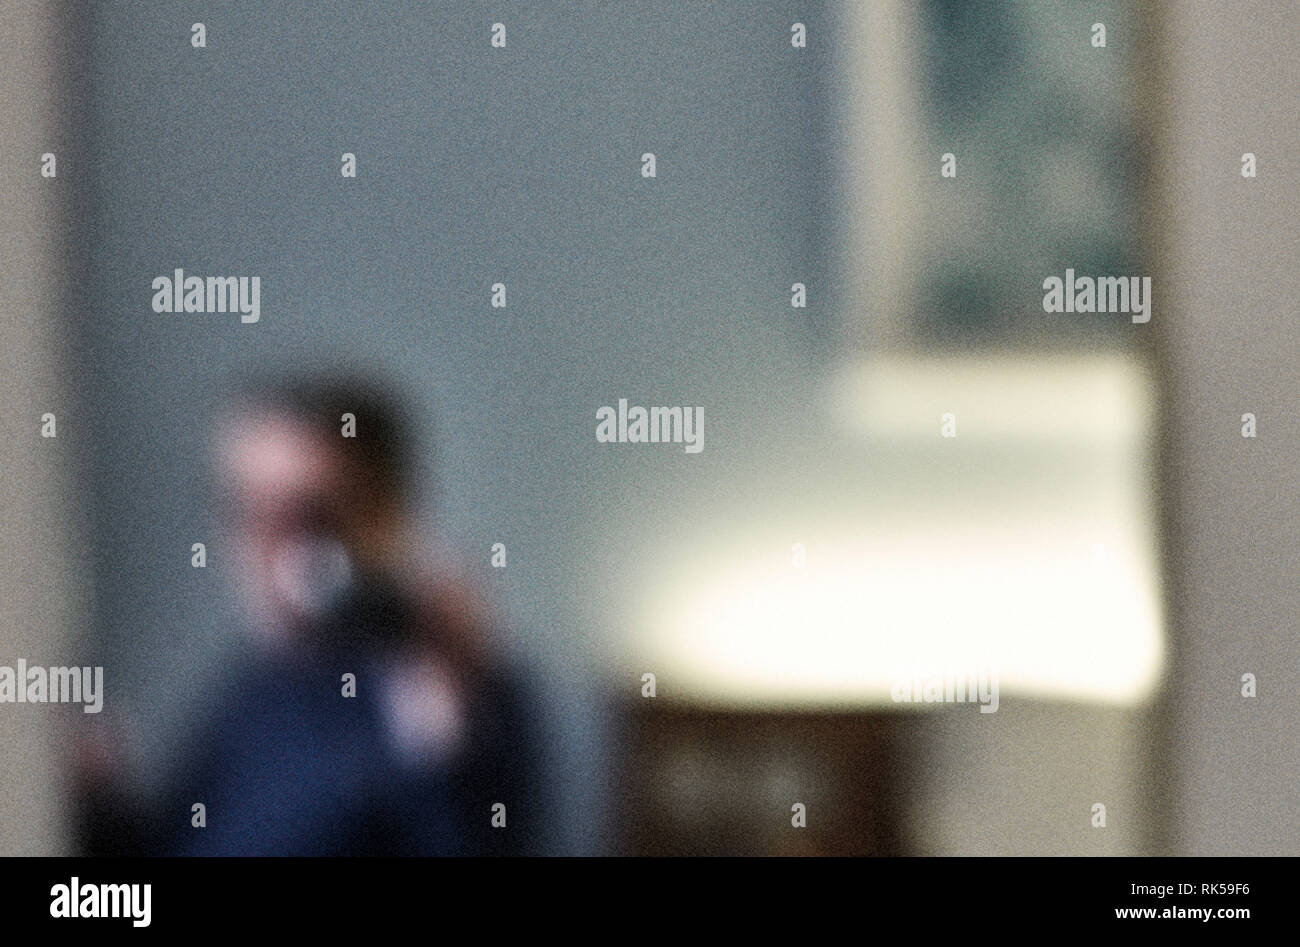 Man in hotel room mirror completely blurred with added grain - Stock Image